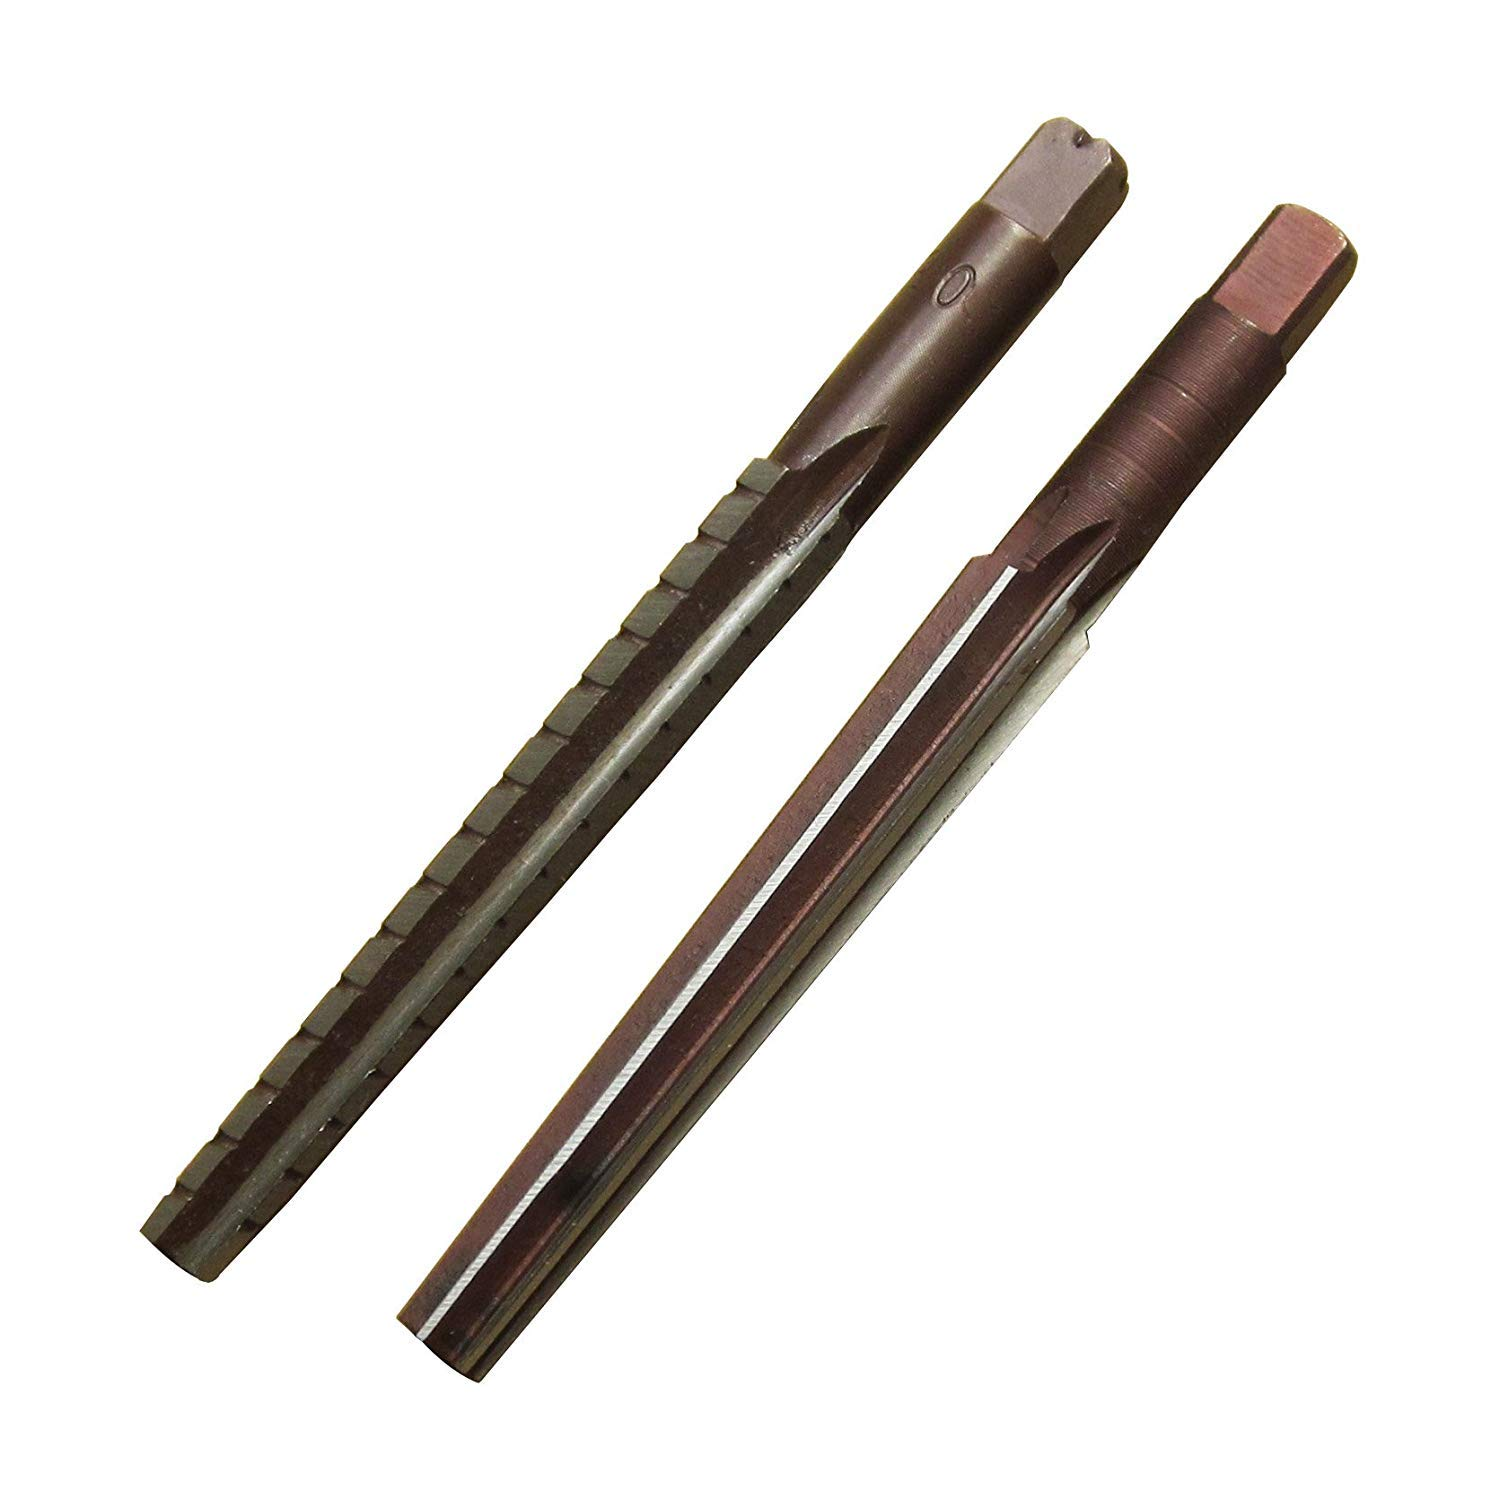 No.0 Morse Taper Reamer Set MT0 for Power Tools 93 x 61 x 9mm,High Speed Steel